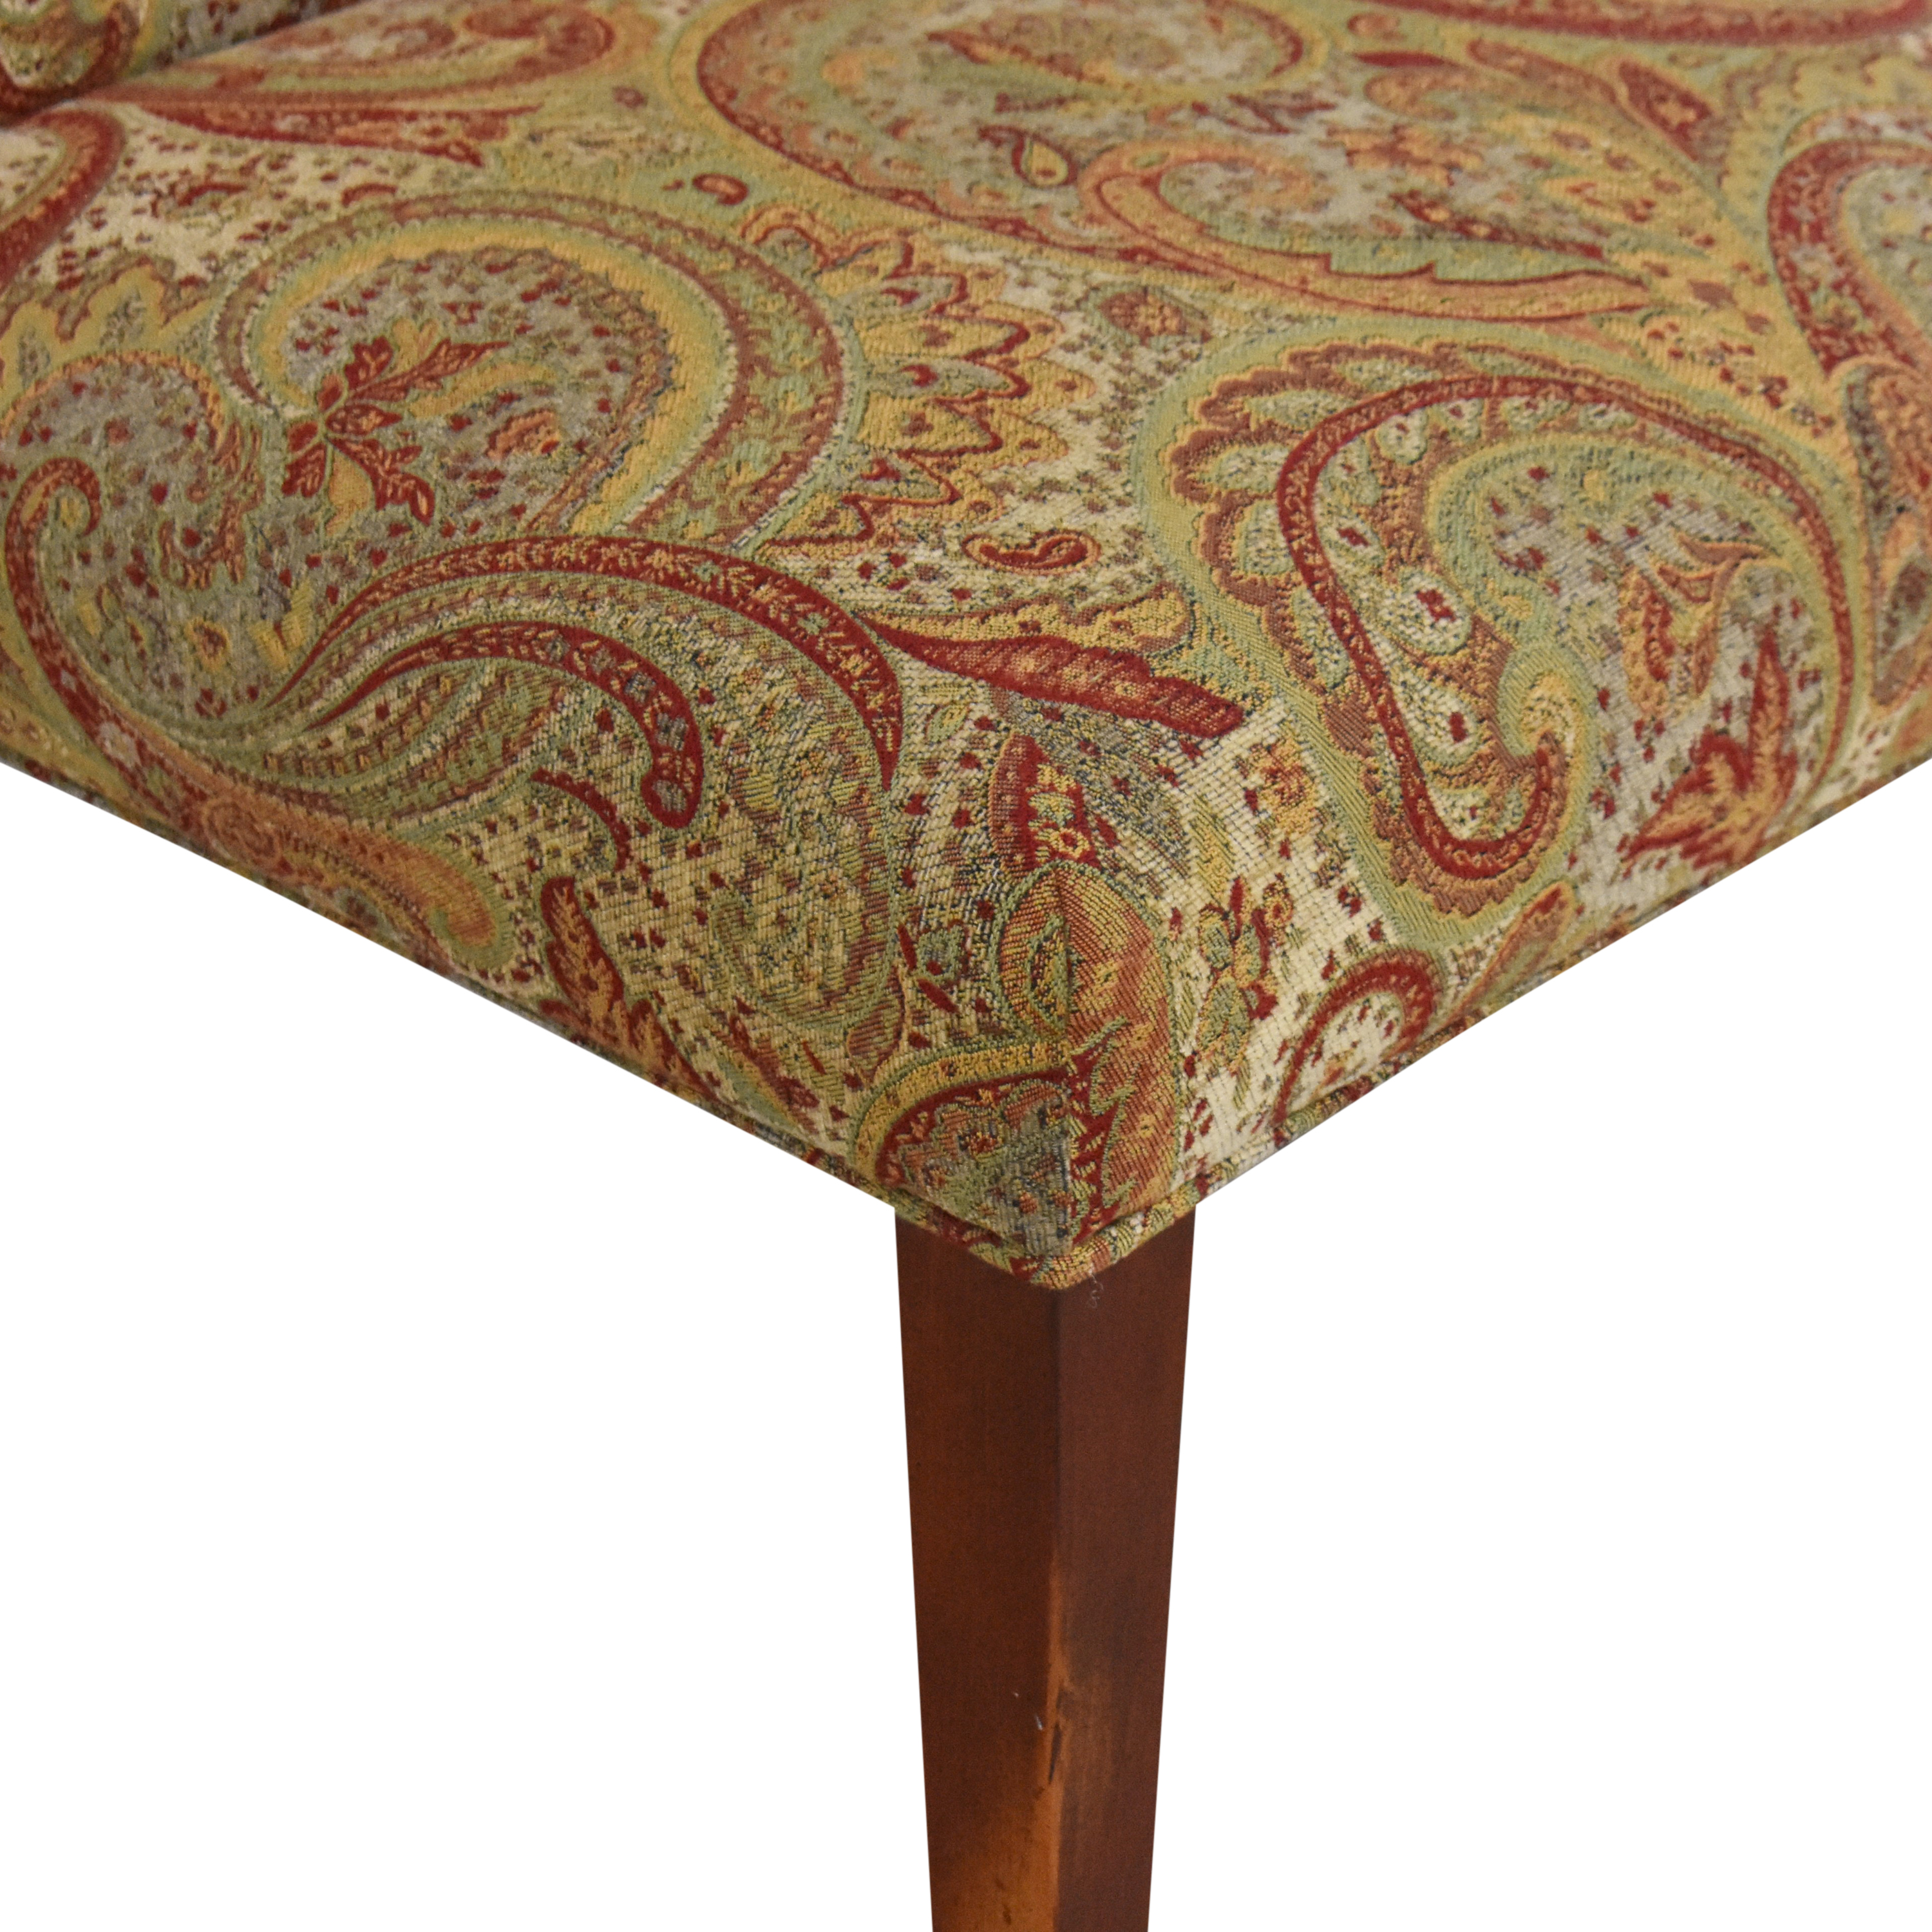 buy Saloom Model 61 Upholstered Dining Side Chairs Saloom Dining Chairs